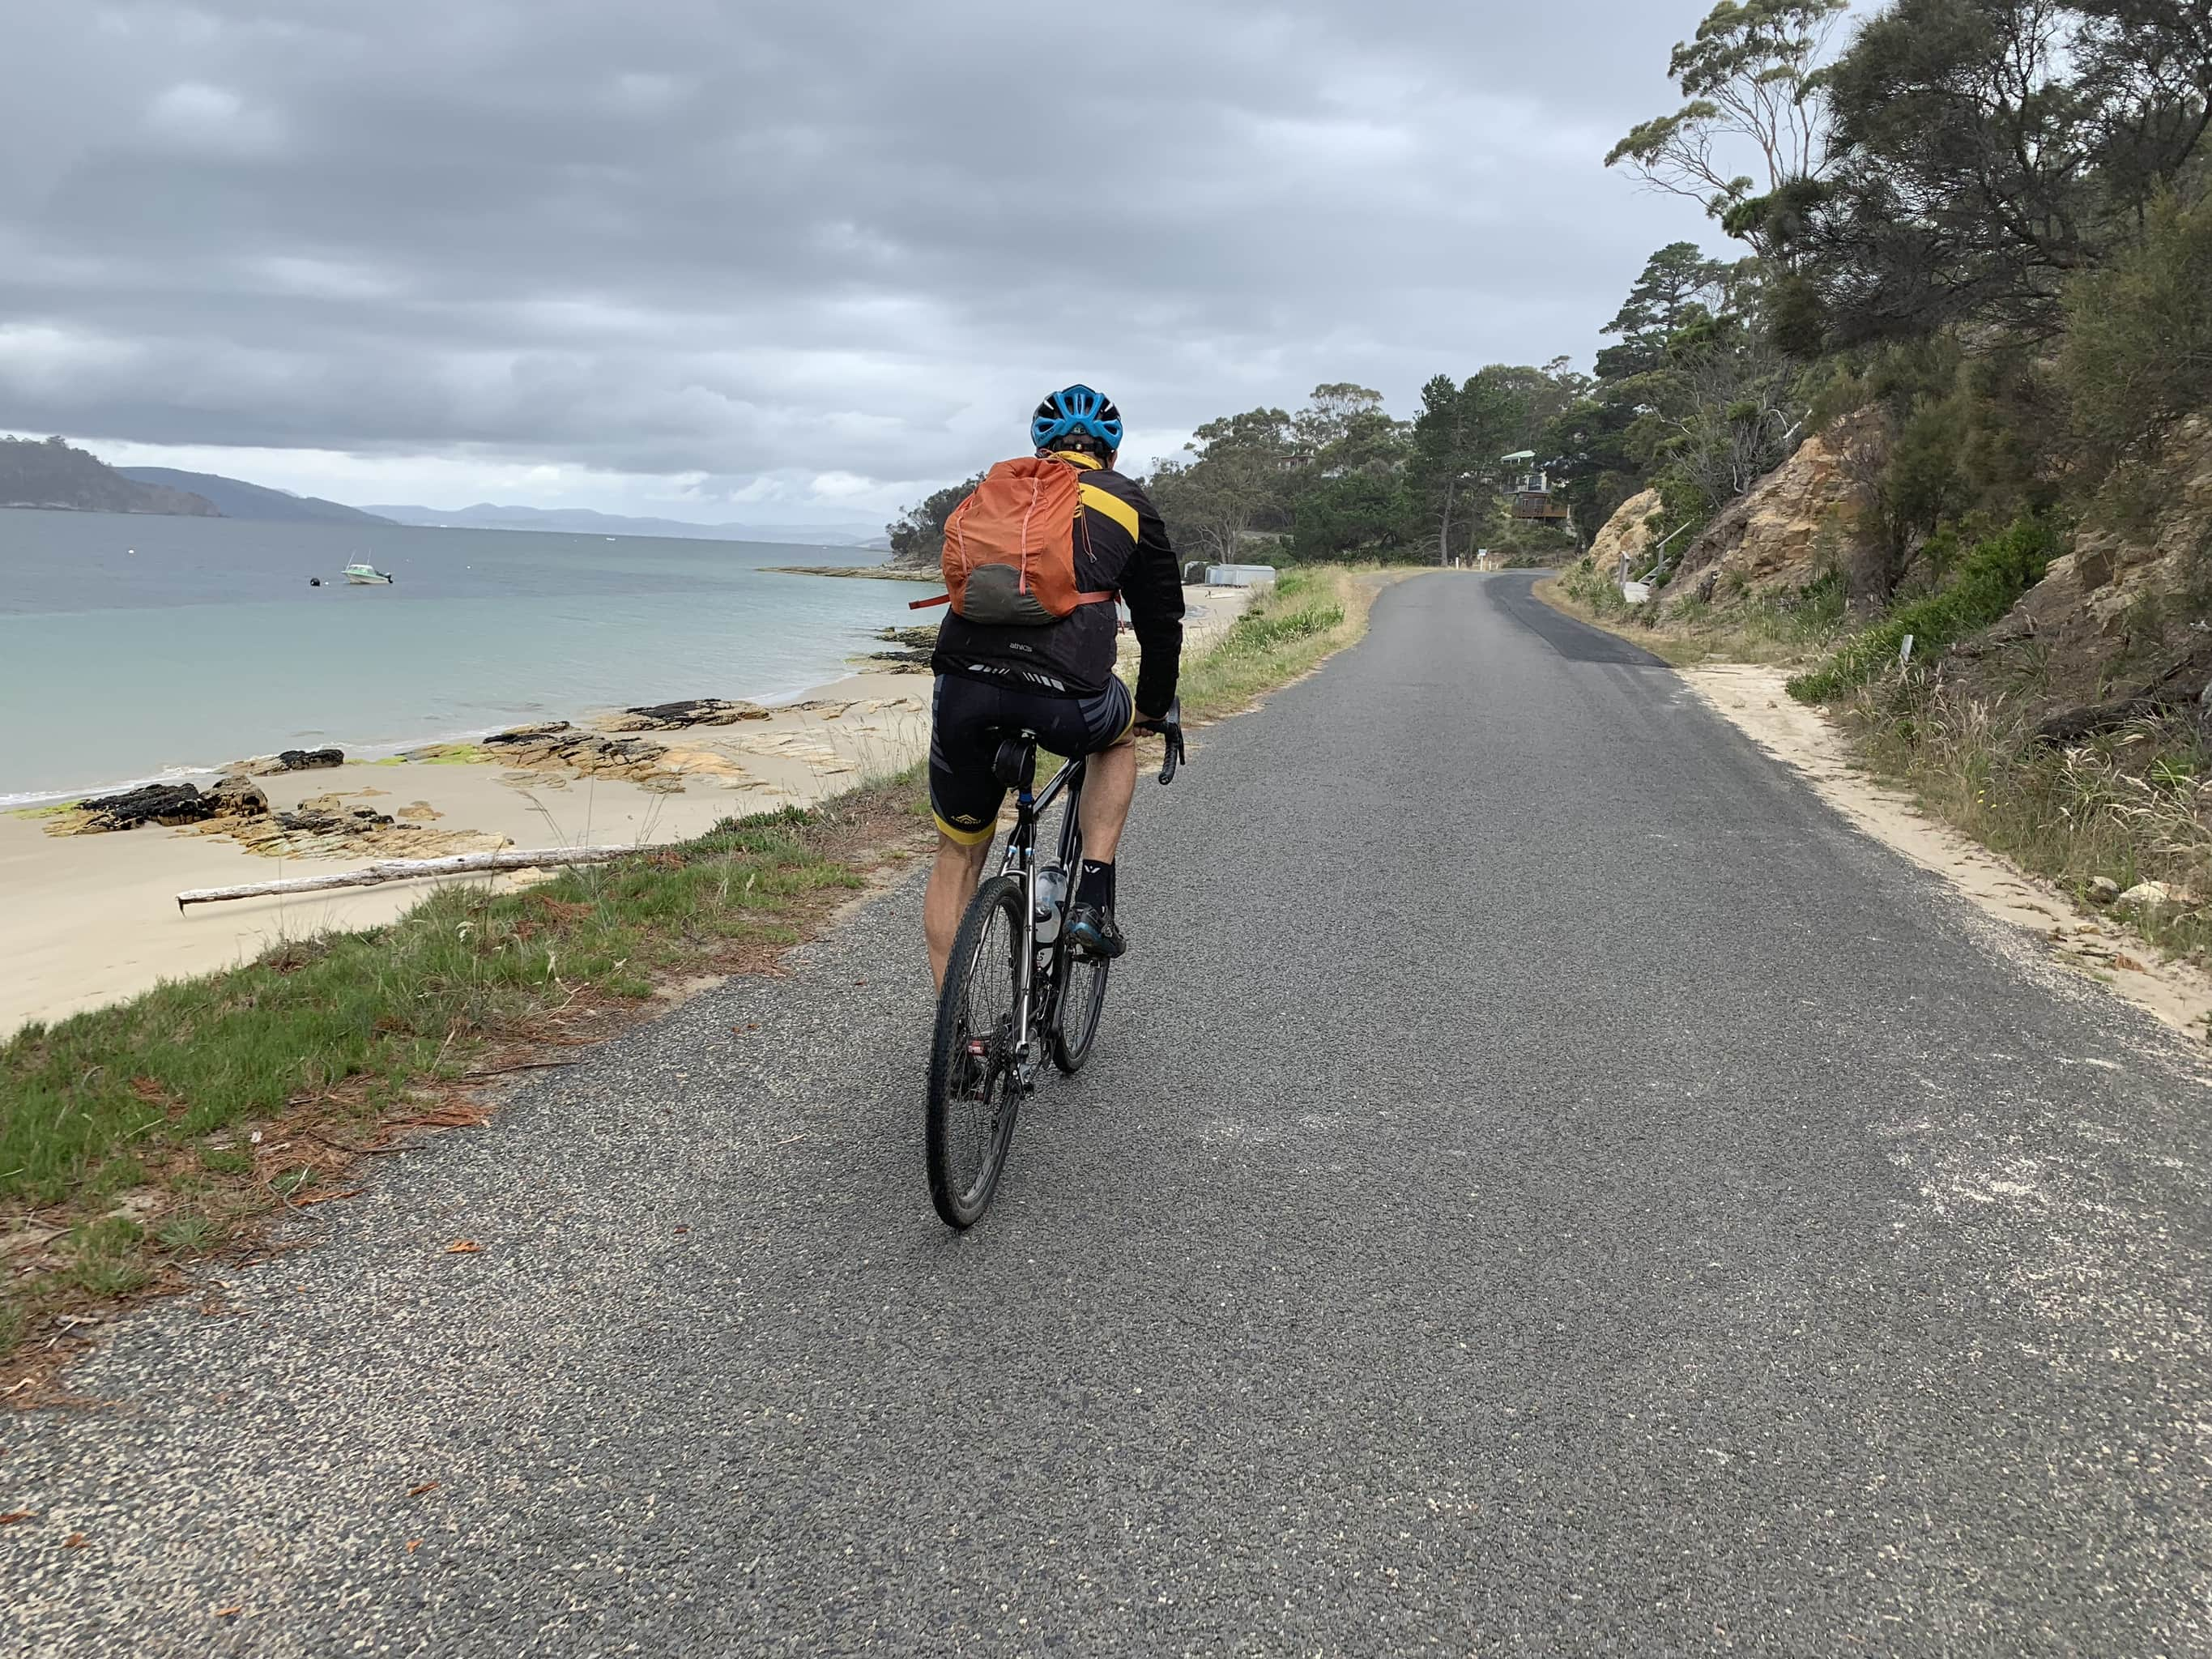 Bike rider on paved road near Dennes Point on North Bruny Island. Coast line to left.